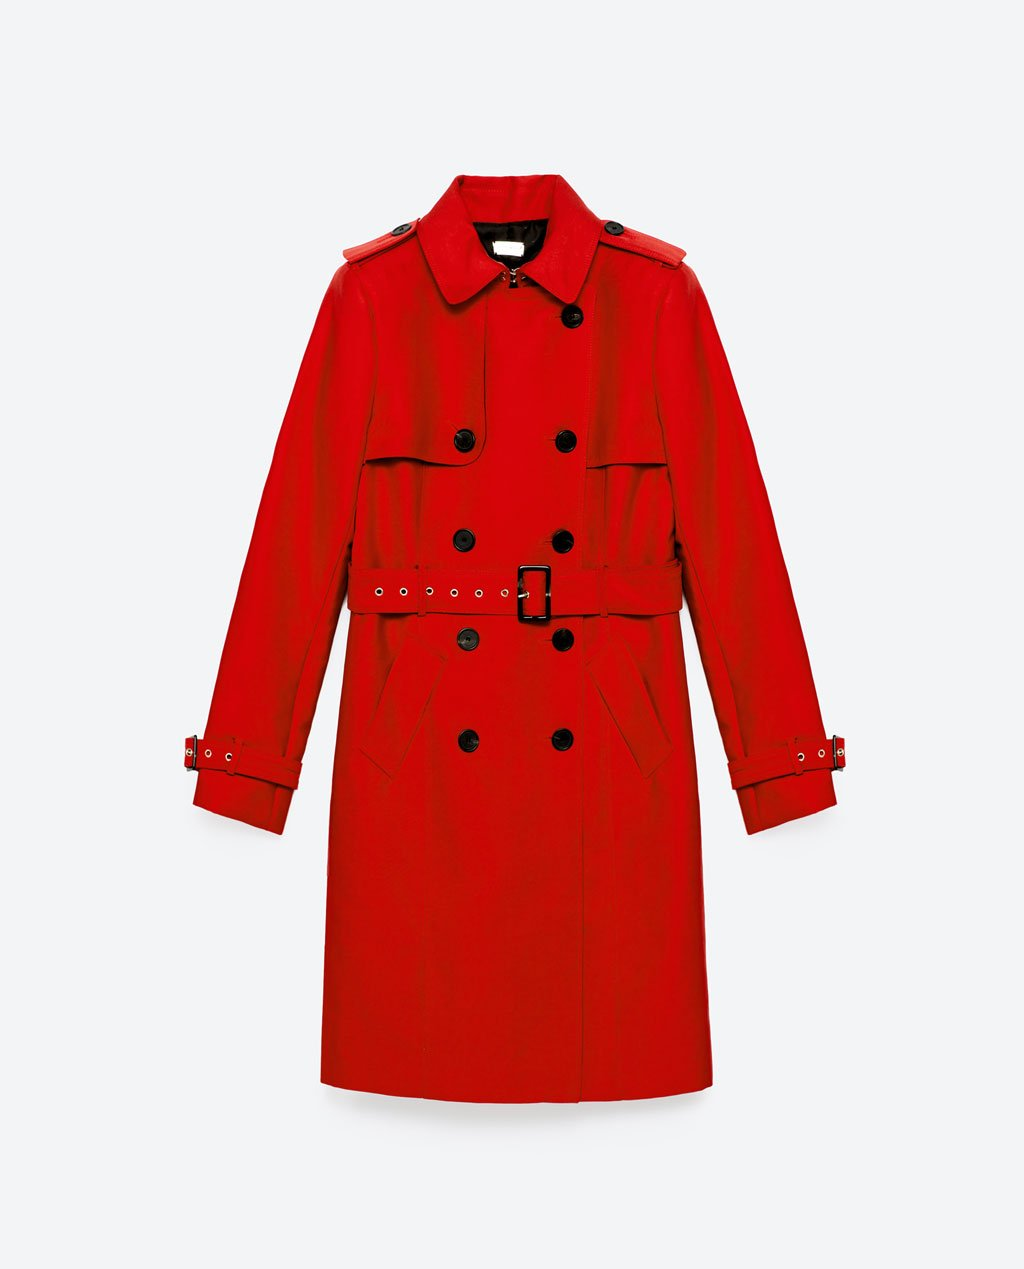 Fall Capsule Wardrobe - The Only 7 Pieces You Need - Zara Water Resistant Trench Coat